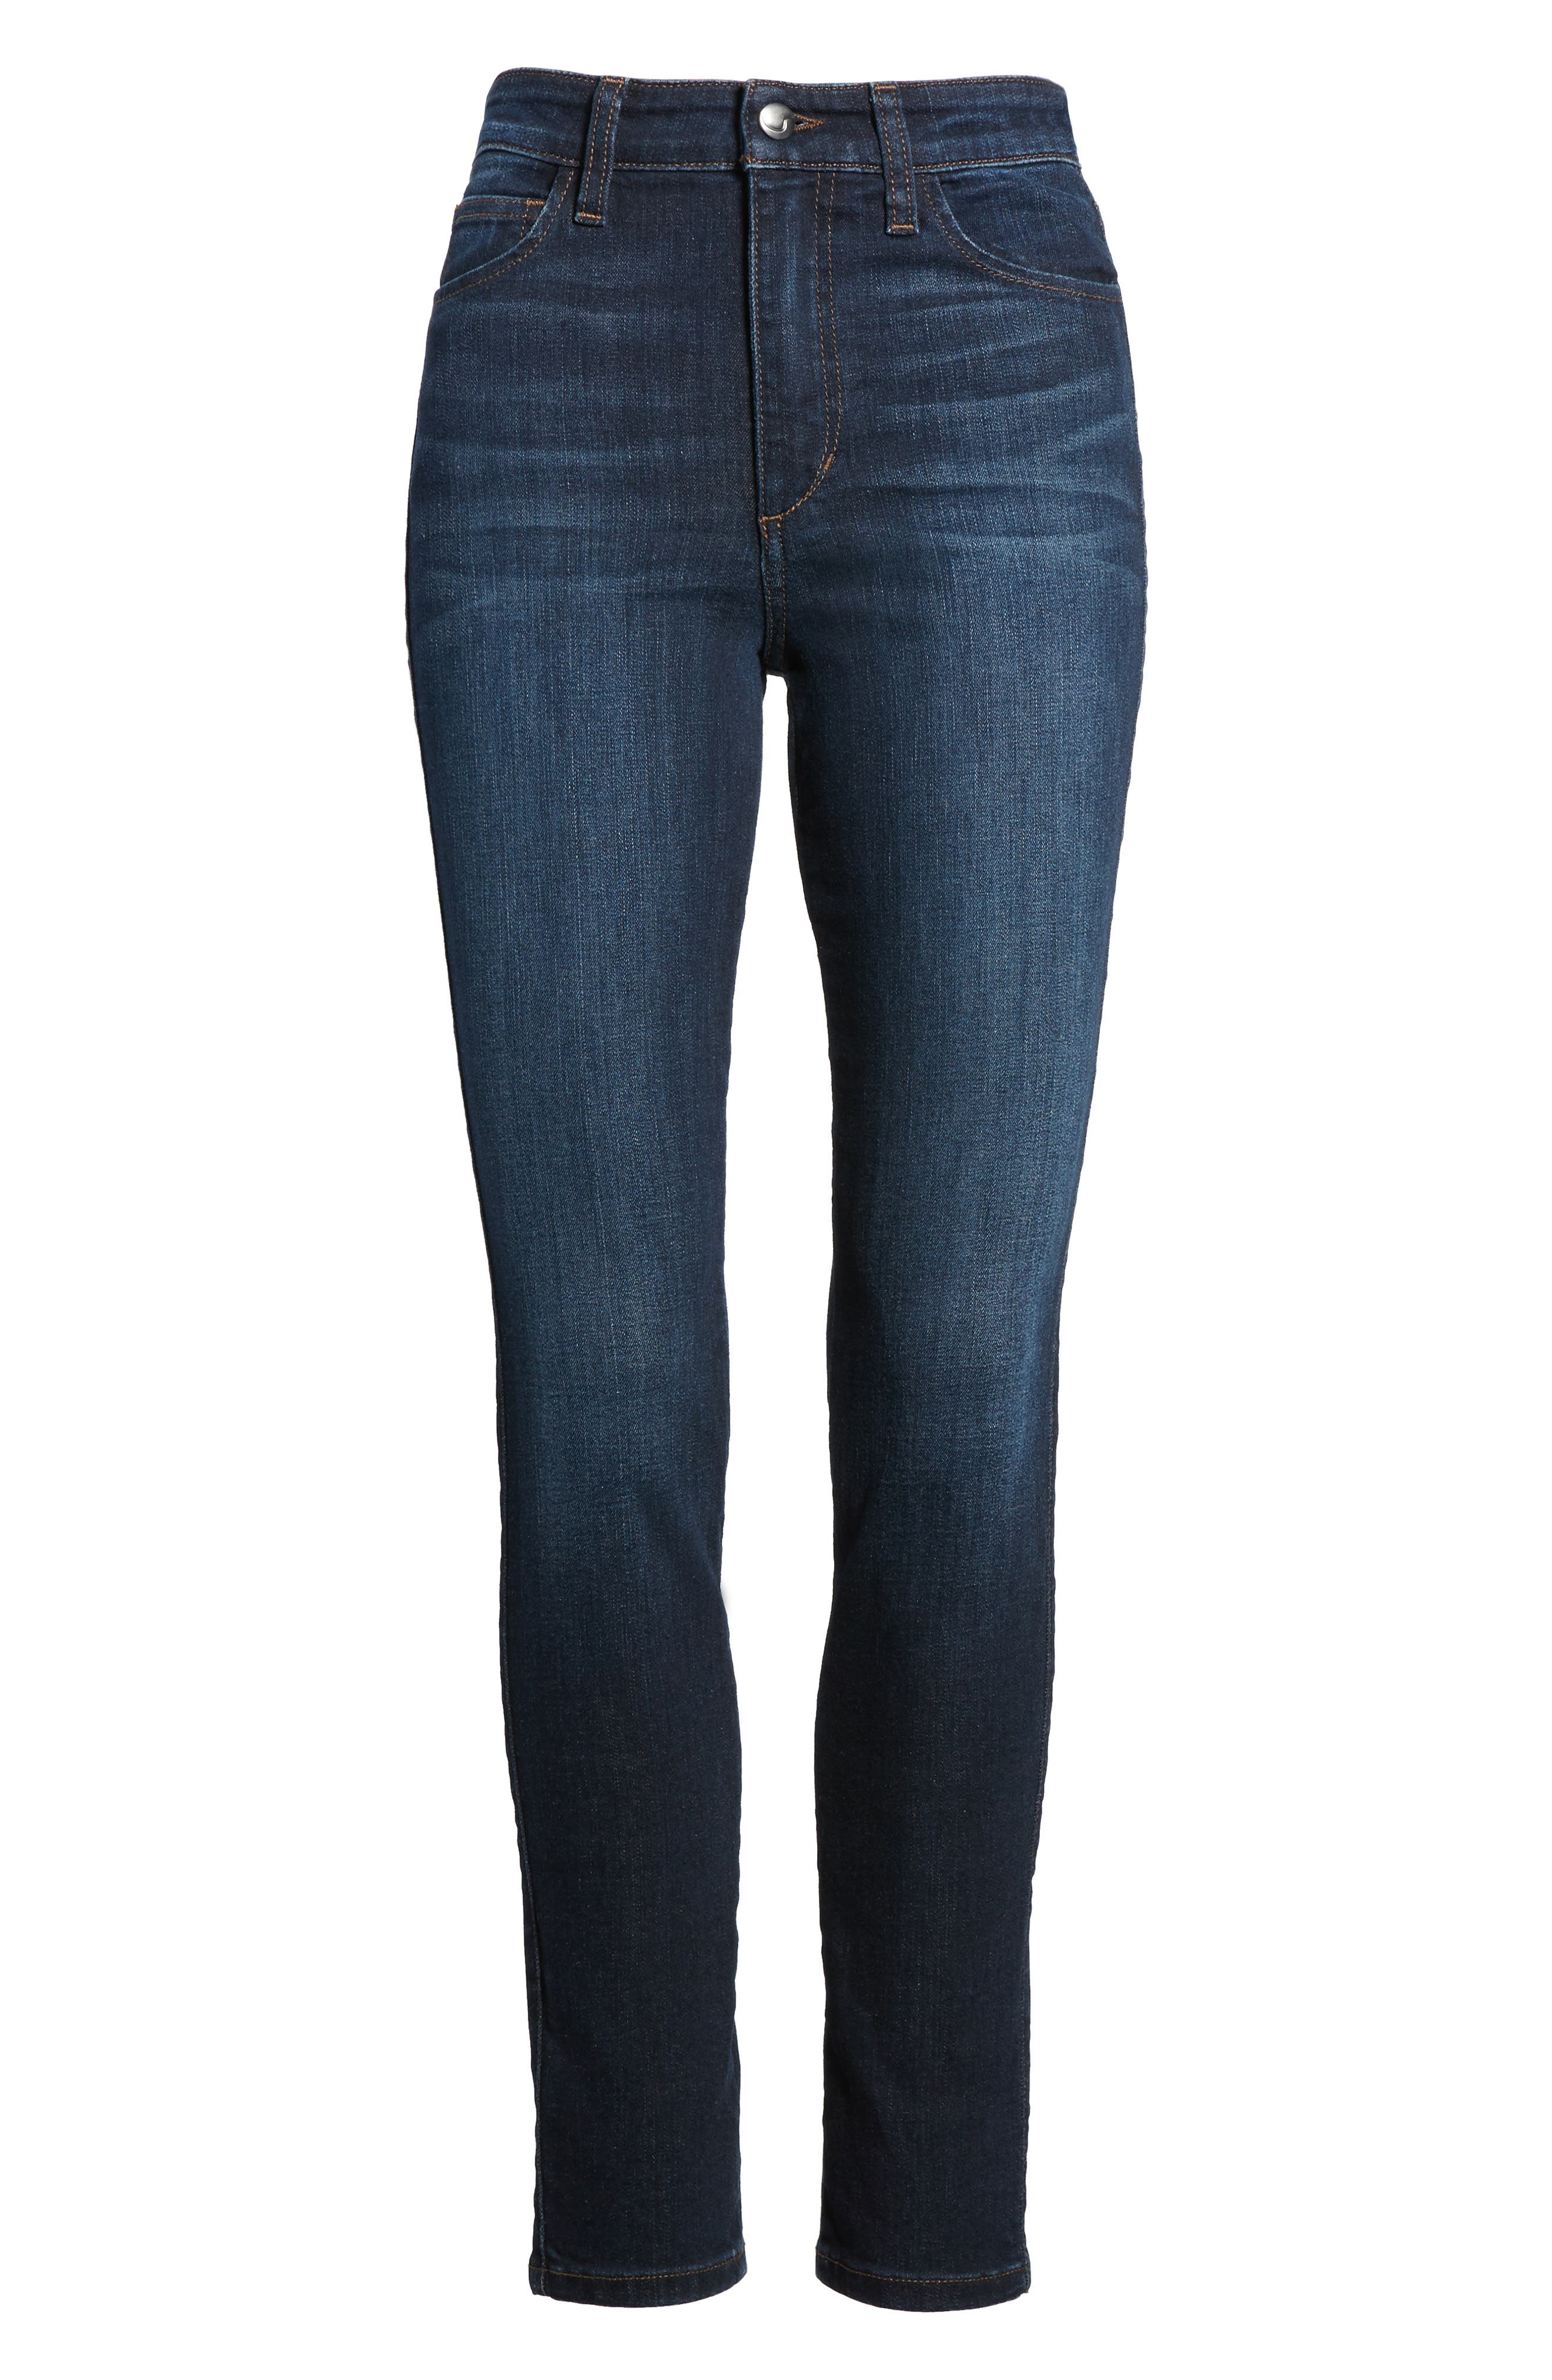 Charlie High Waist Skinny Jeans,                             Alternate thumbnail 6, color,                             405